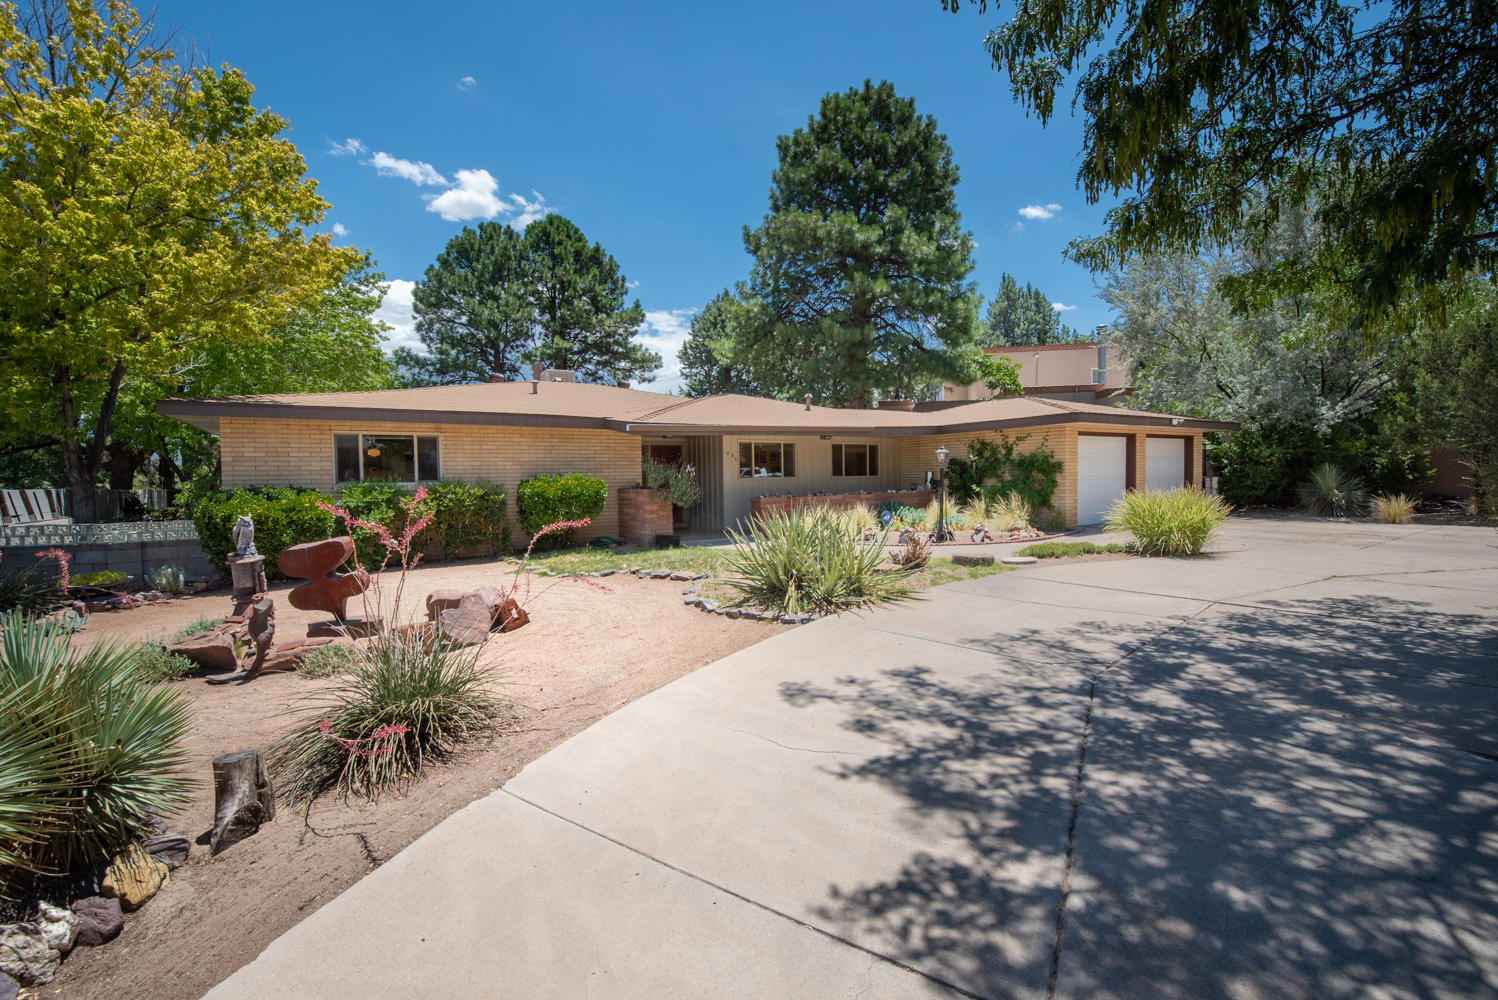 This architectural 1 story rambling ranch home rests in Ridgecrest on a quiet street with a circular driveway in a genuine tree shaded neighborhood. Over sized backyard with deck has a lot of fun sitting areas for a must have for entertaining with a private wall for privacy. New roof in 2018 & sewer line.This home has great bones with  endless hardwood floos. Comfortable  sized bedrooms. MBedroom suite 22x20 & dressing room 8x10.  Eat-in Kitchen 19x18  & formal dining room.  Marble window sills under the newer thermal windows throughout.  Lot of mid century modern accents like the kitchen cabinets and wood in the den area next to the wood burning fireplace. The hallway would be a perfect gallery for artistic art work to display. Central forced air, refrigerated air & evaporative cooling.